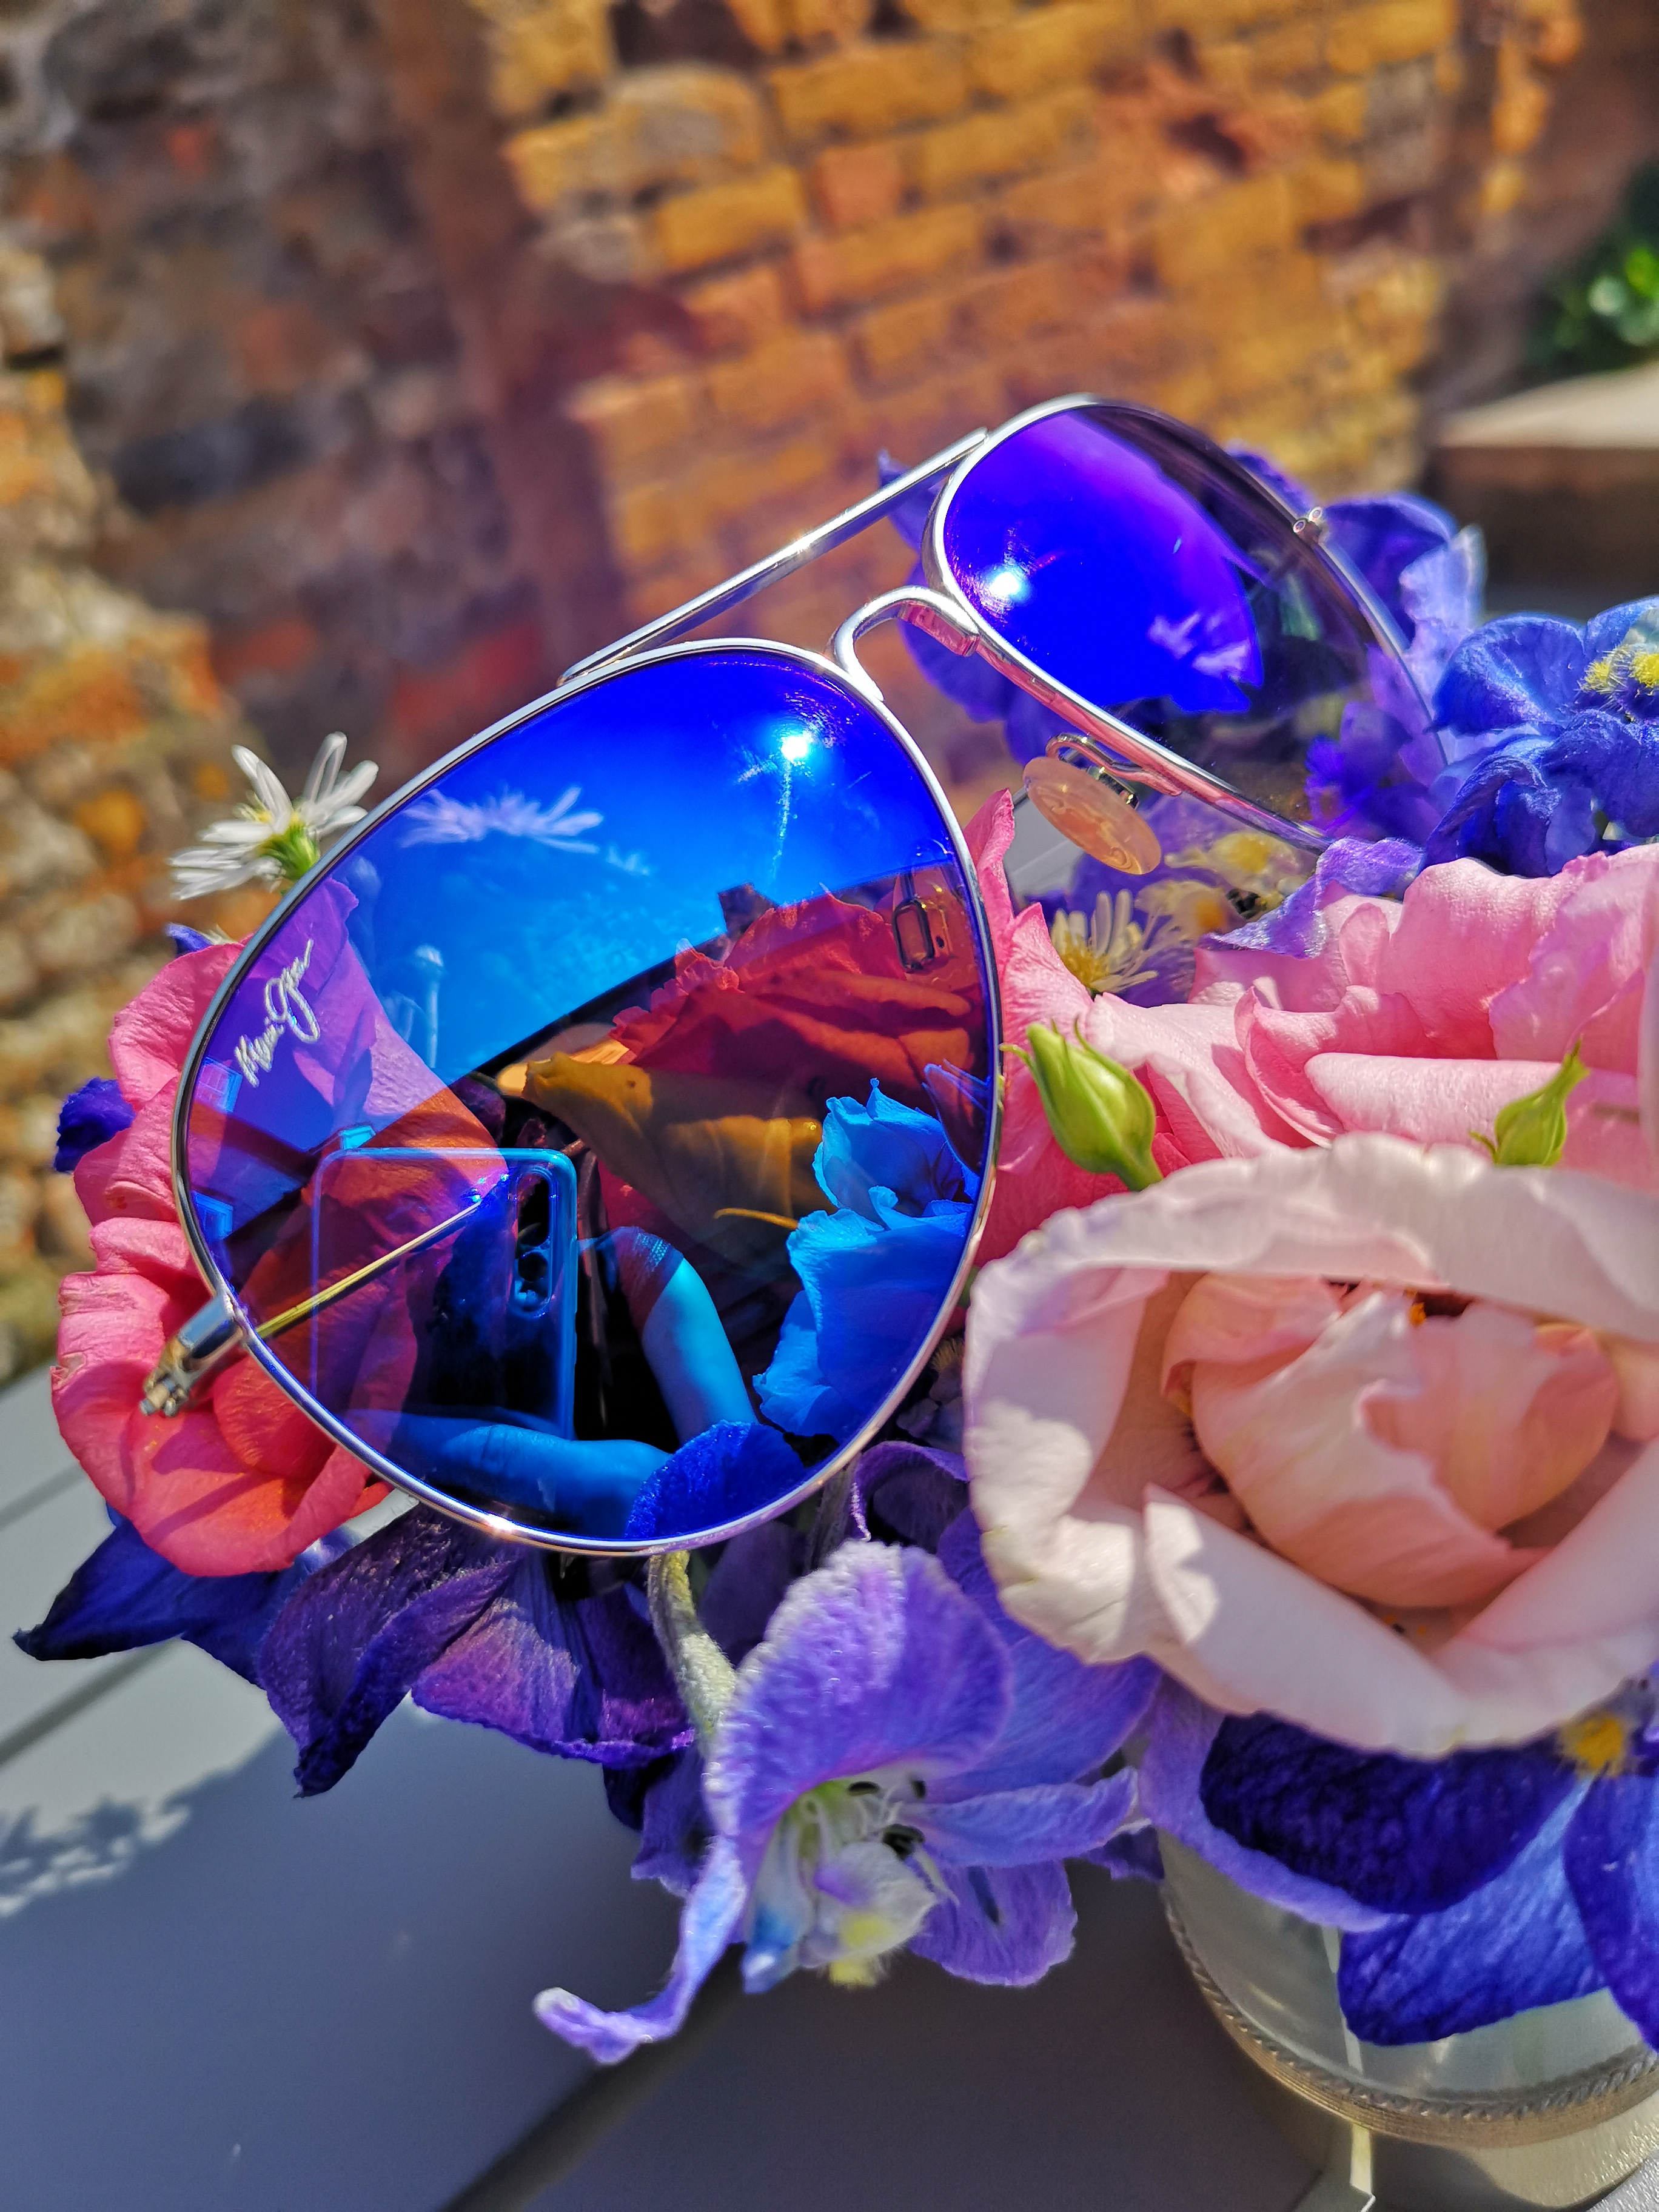 An exclusive opportunity to view the complete Maui Jim range